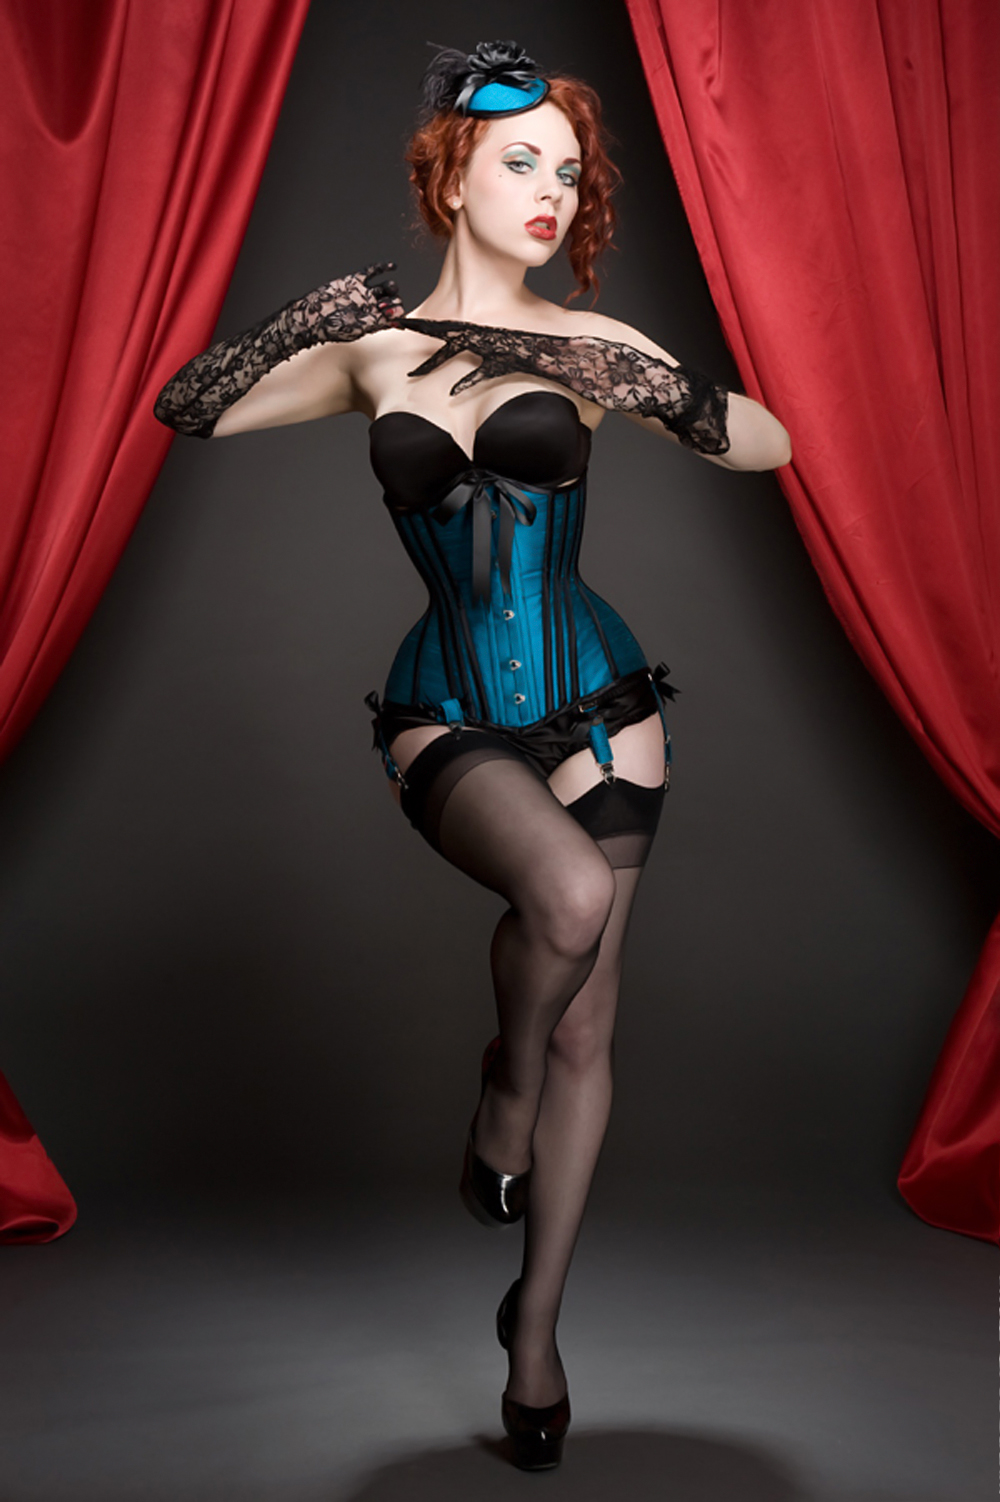 Red velvet burlesque corset outfit